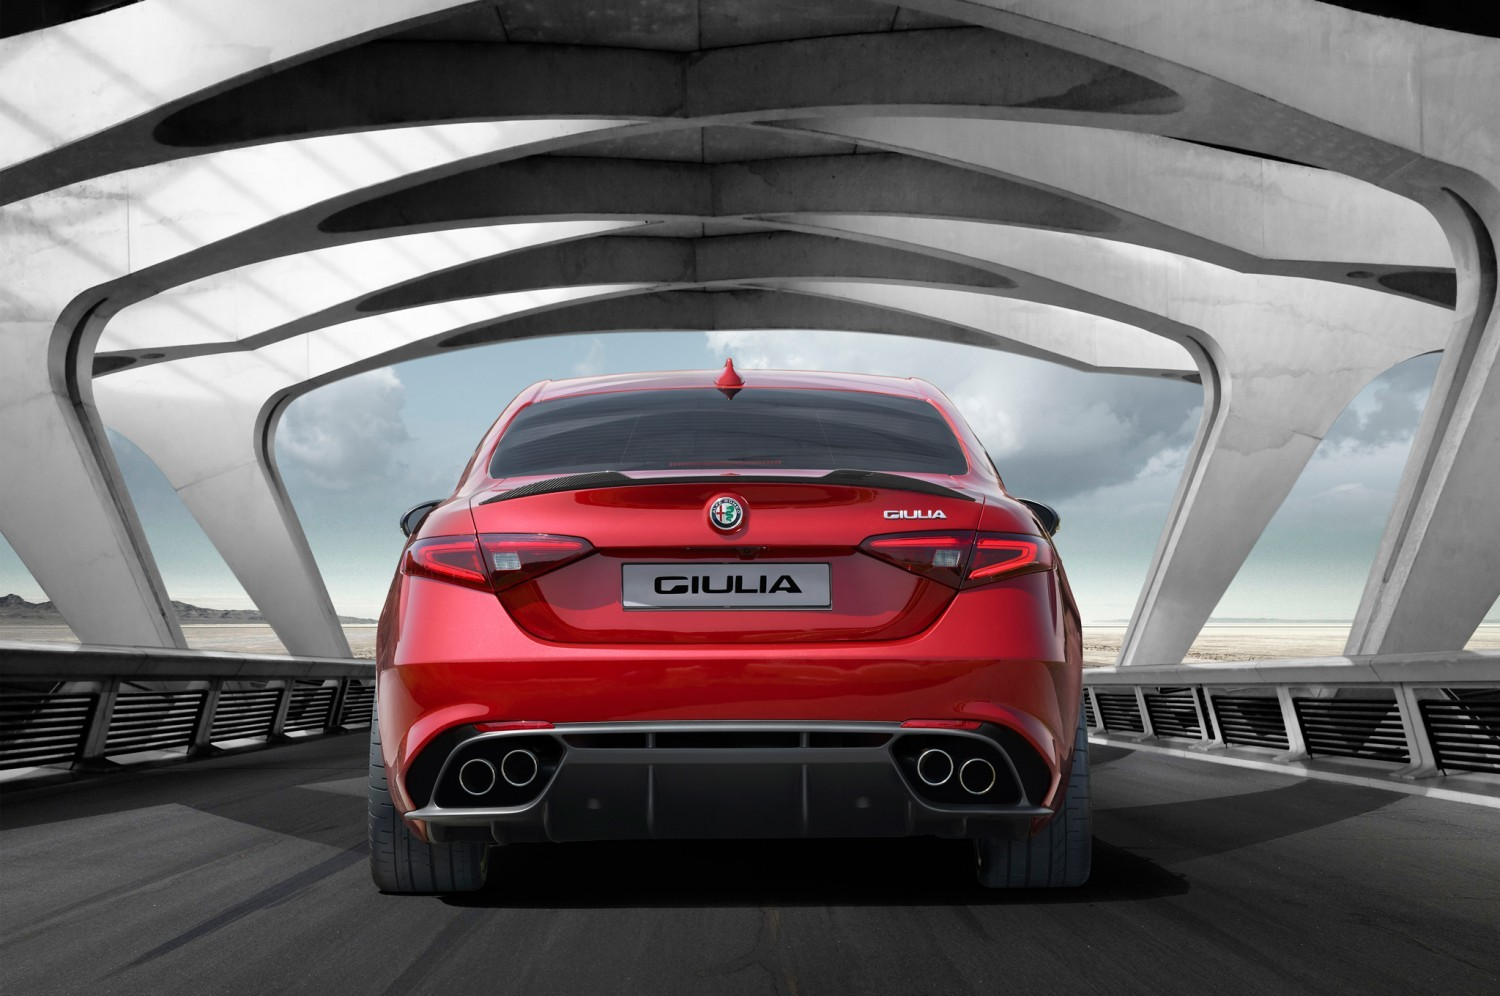 alfa-romeo-giulia-rear-end